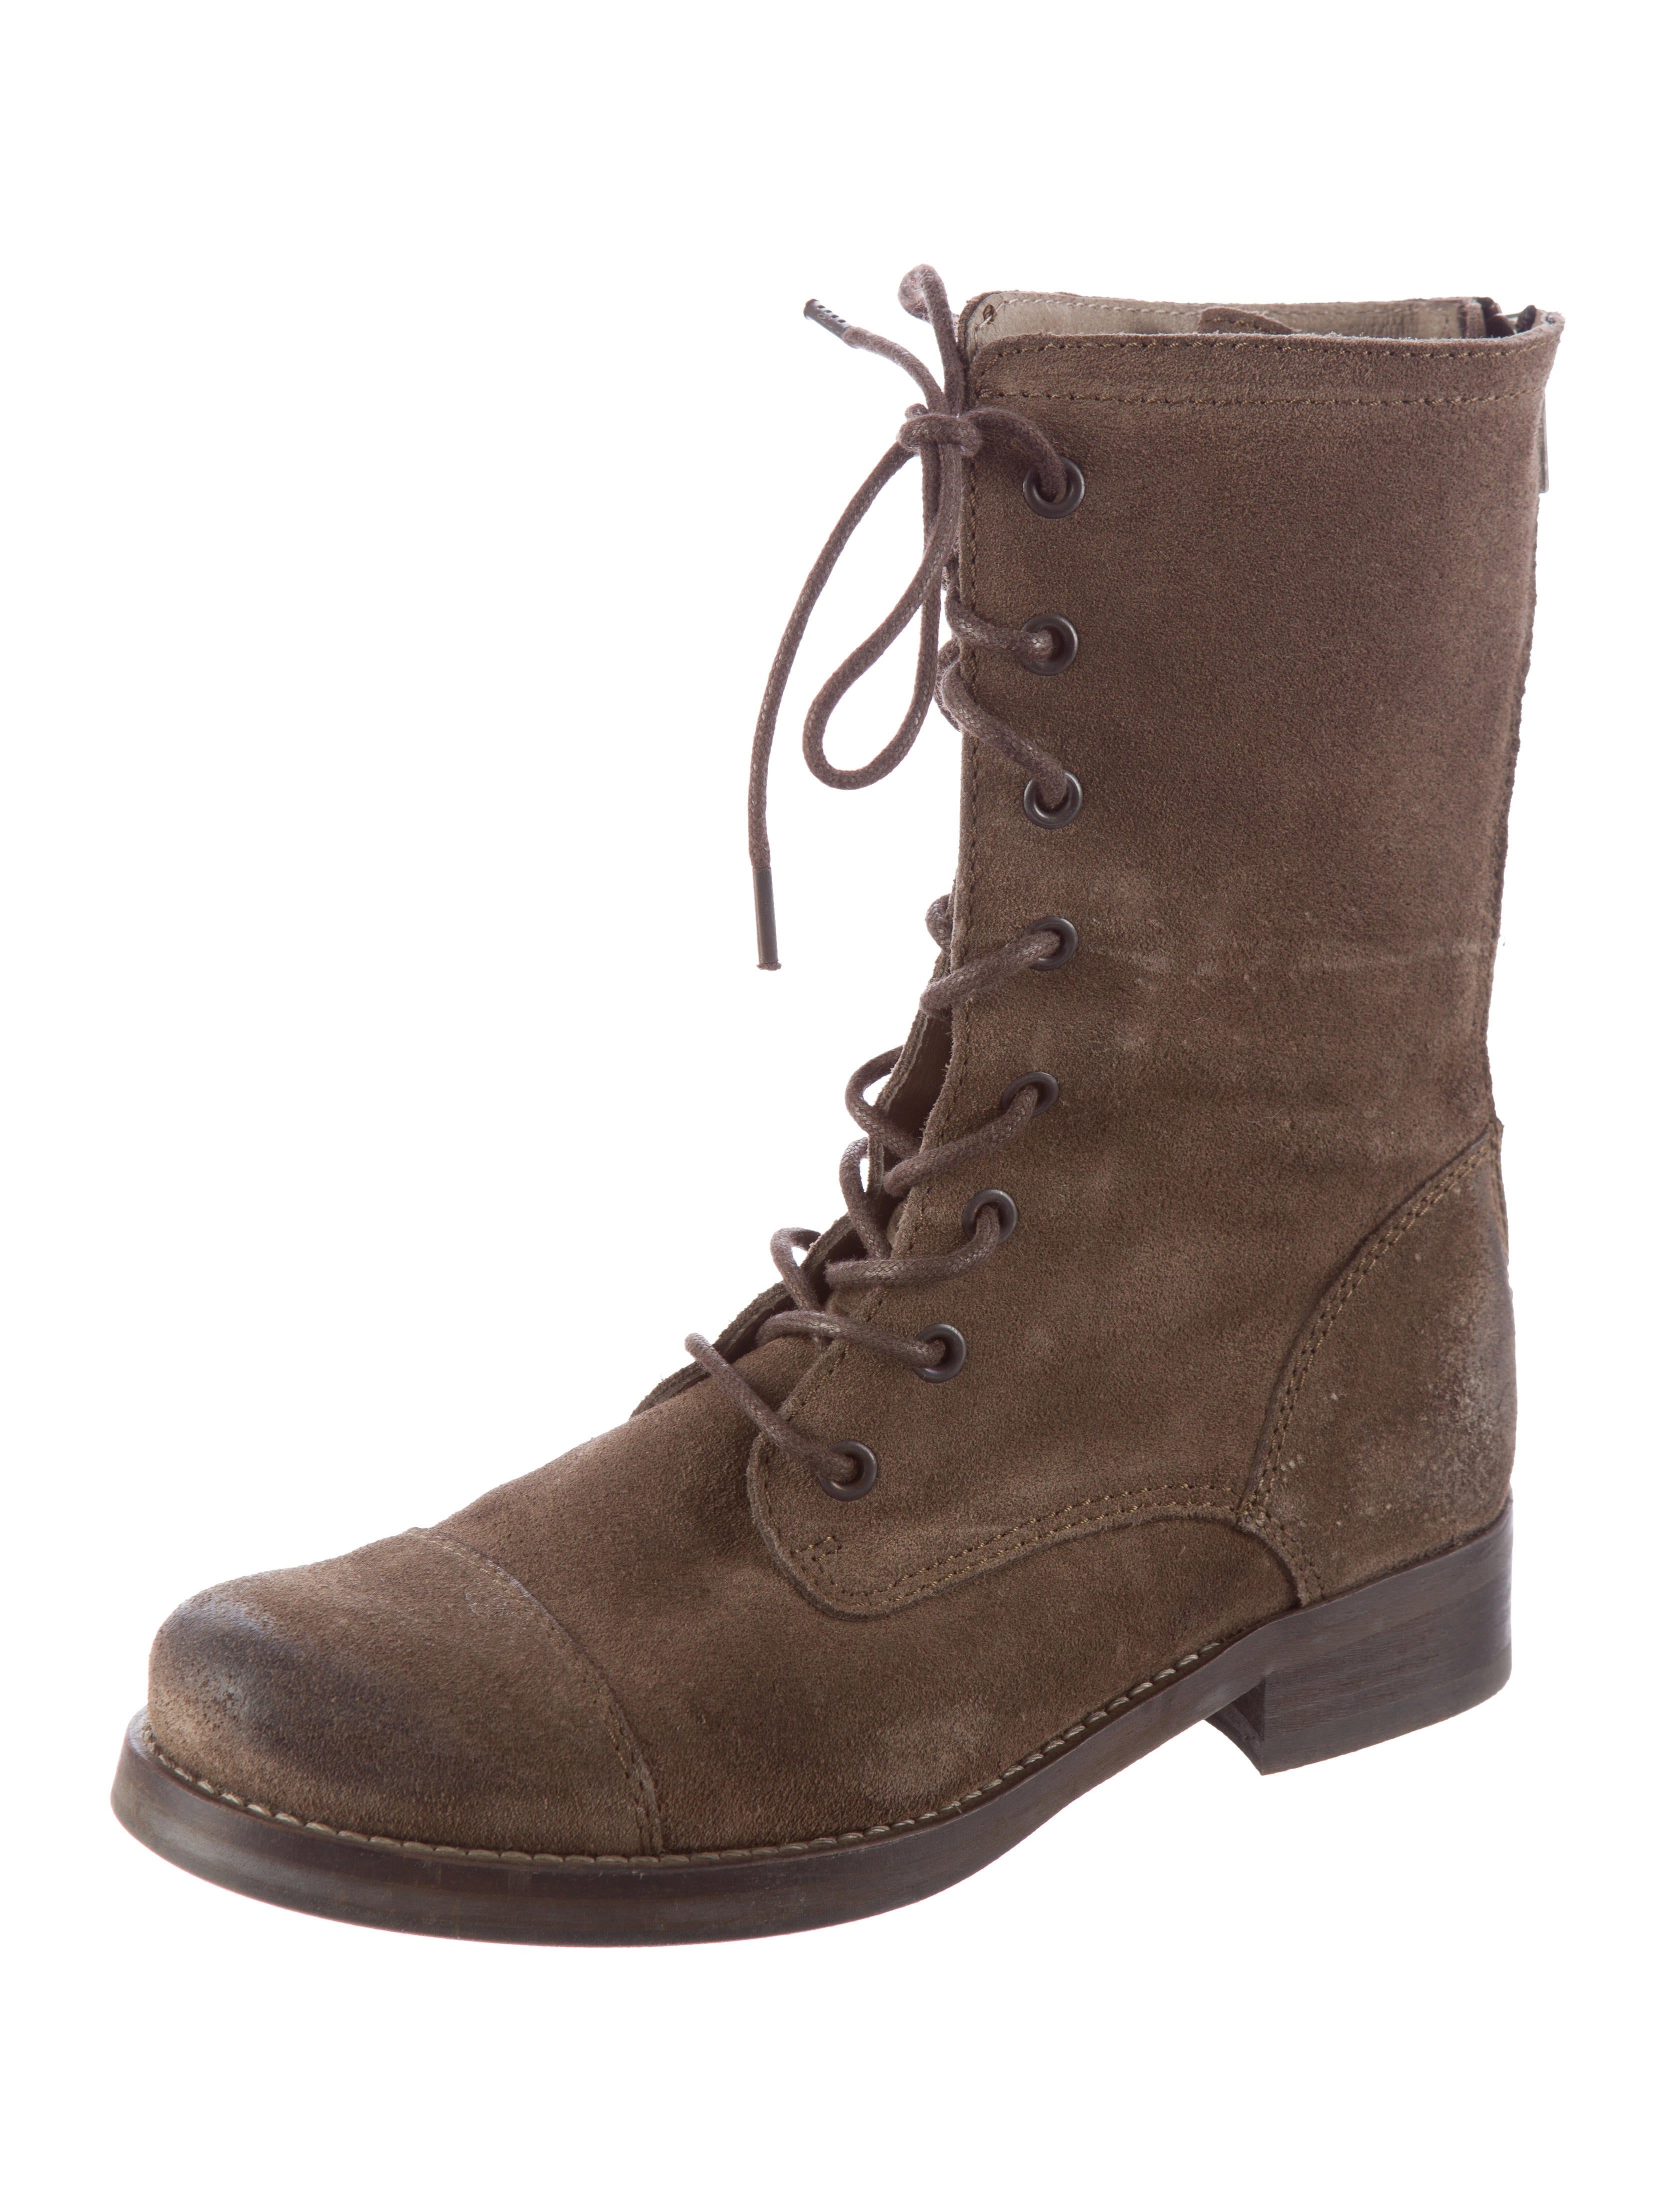 allsaints suede combat boots shoes waq20108 the realreal